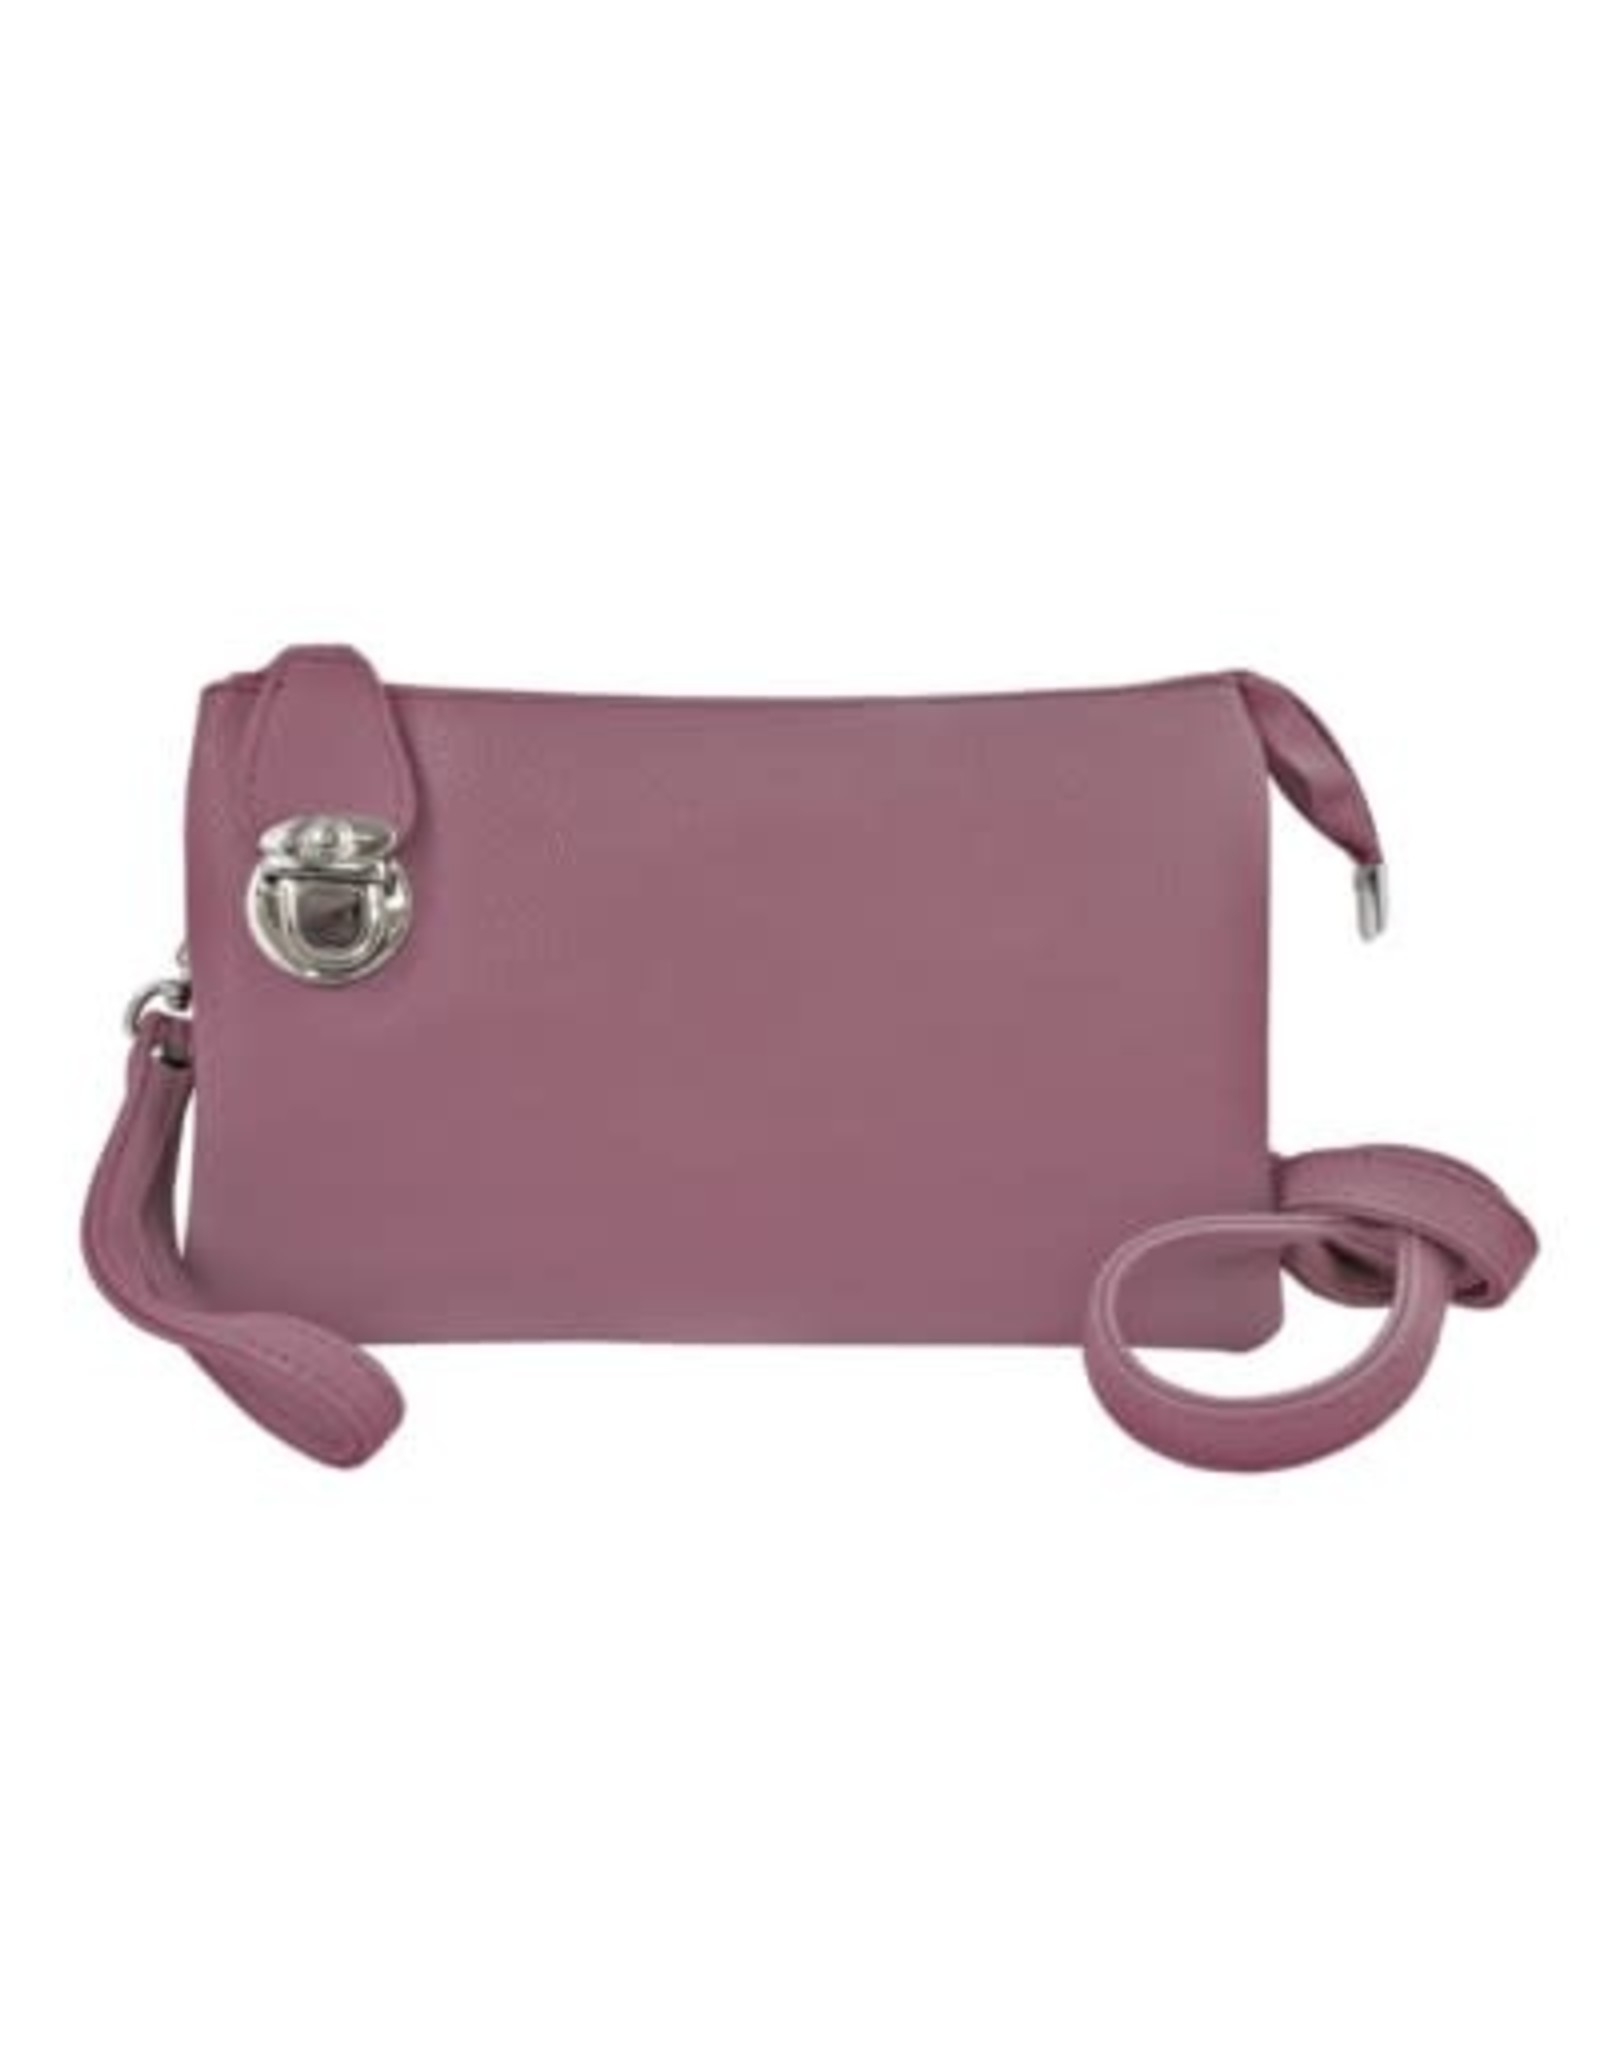 Buckle Clutch with Crossbody Strap and Wristlet